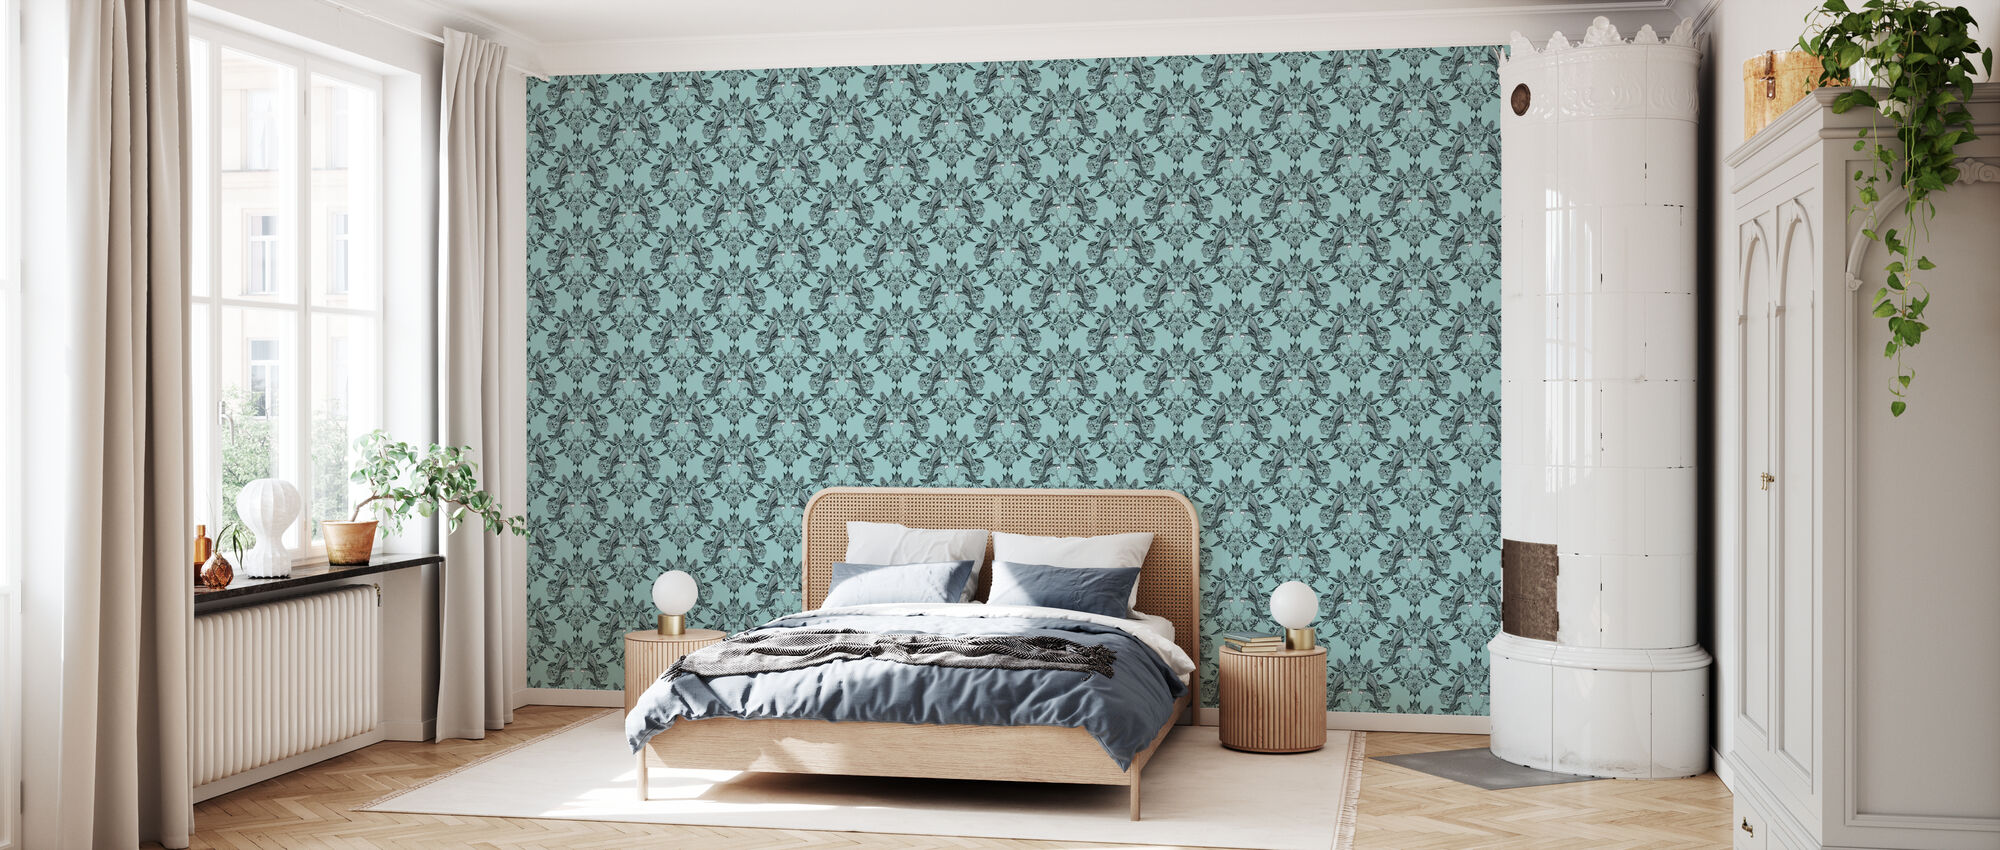 Budgies Medallion Turquoise - Wallpaper - Bedroom